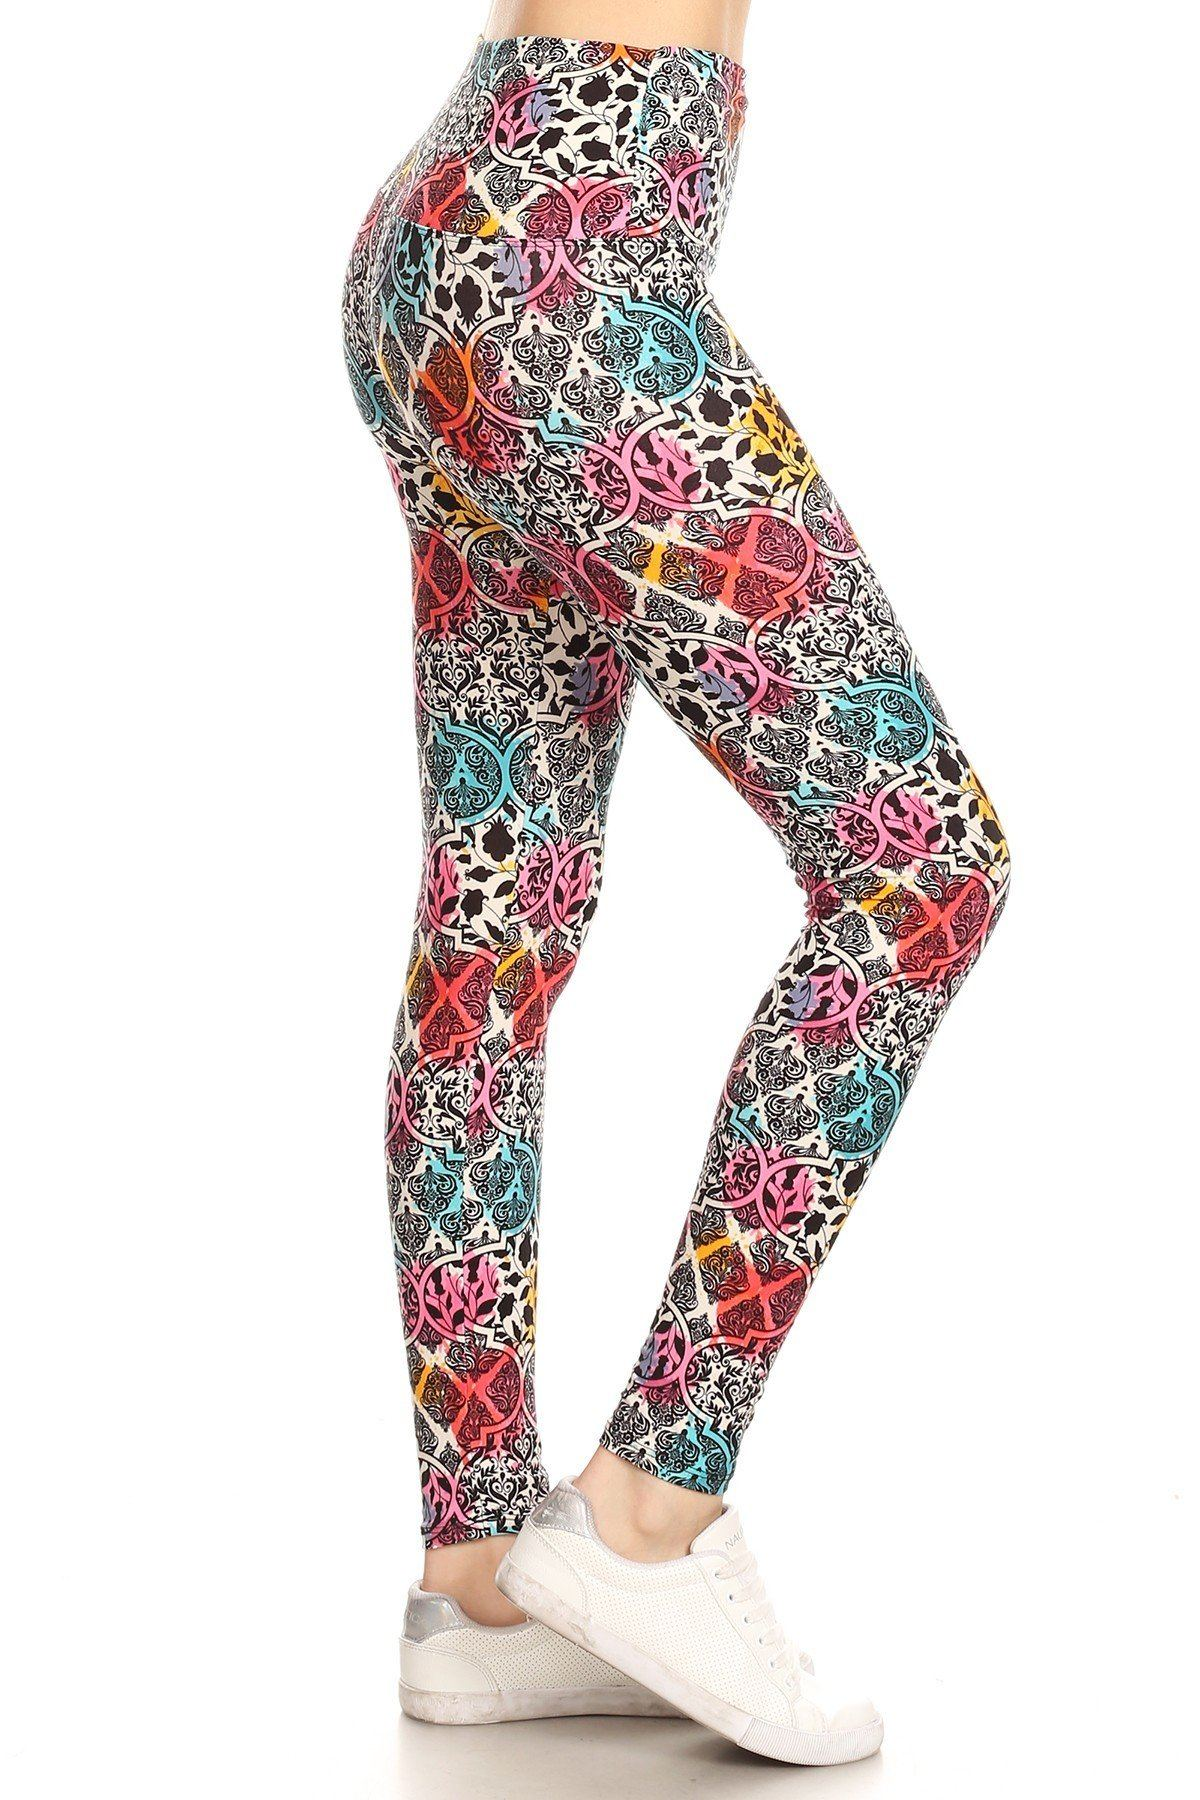 5-inch Long Yoga Style Banded Lined Damask Pattern Printed Knit Legging With High Waist-Black Glitter Girl